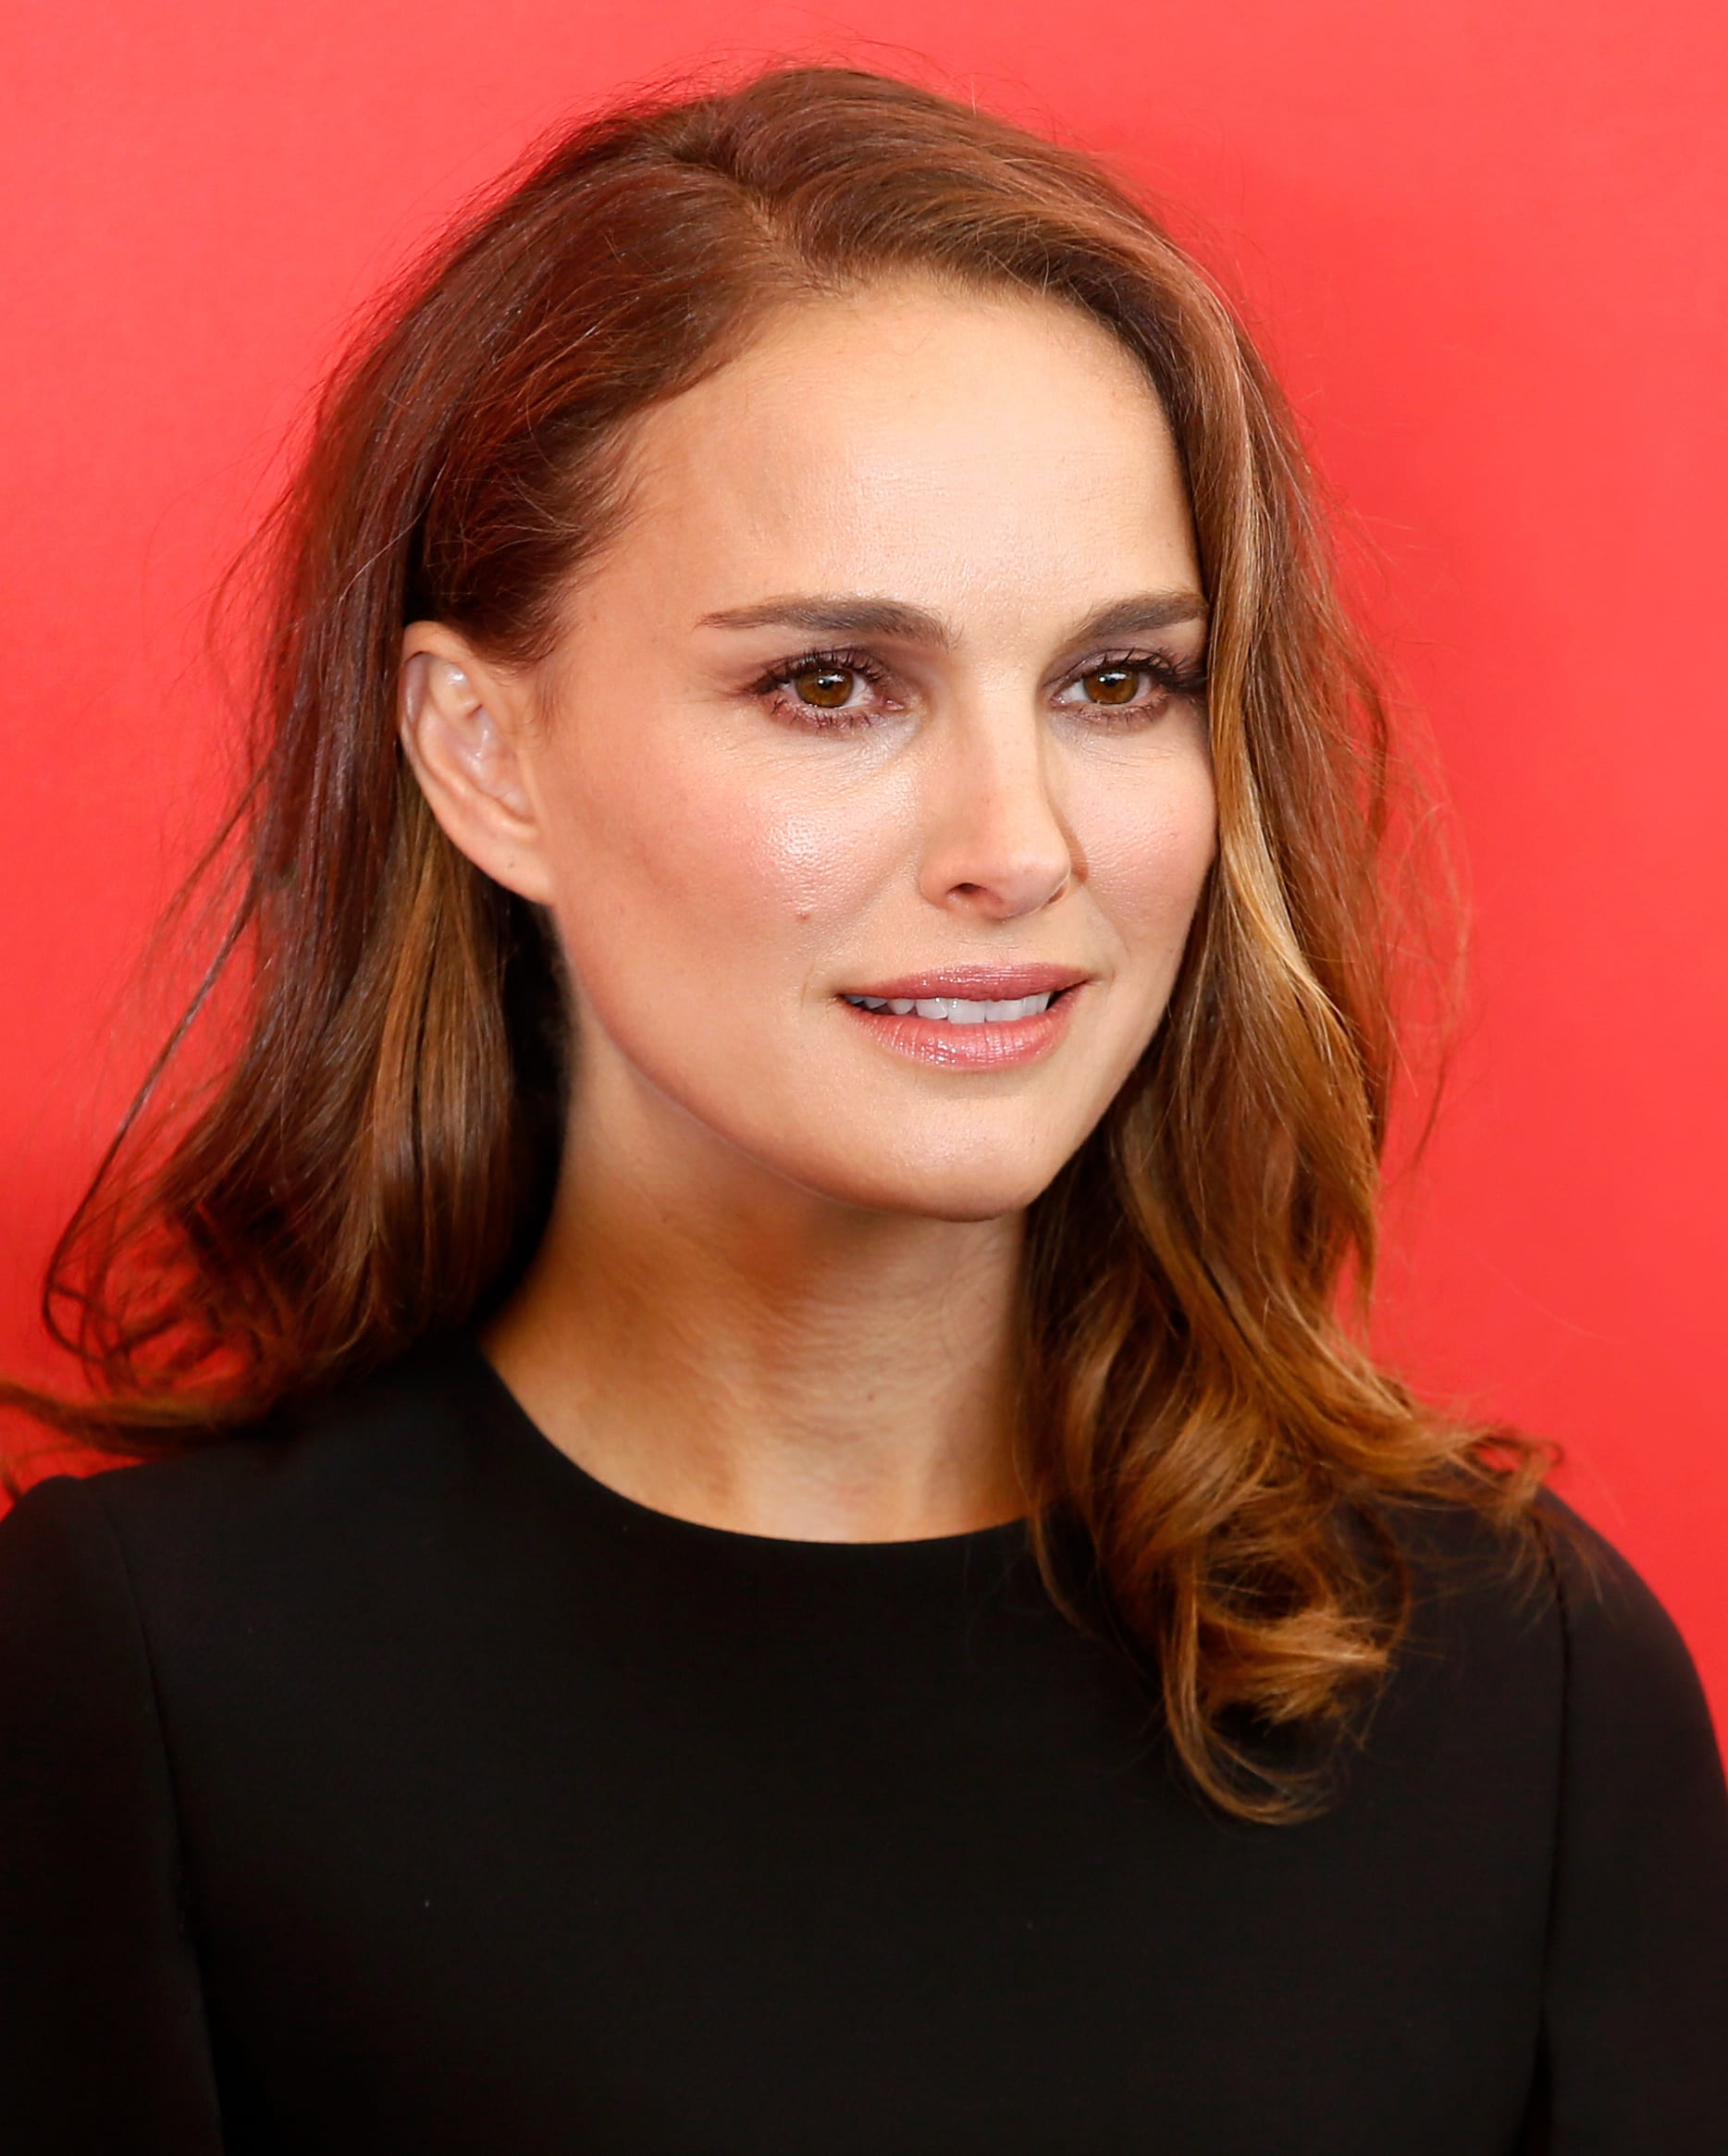 Natalie Portman's Relaxed Curls